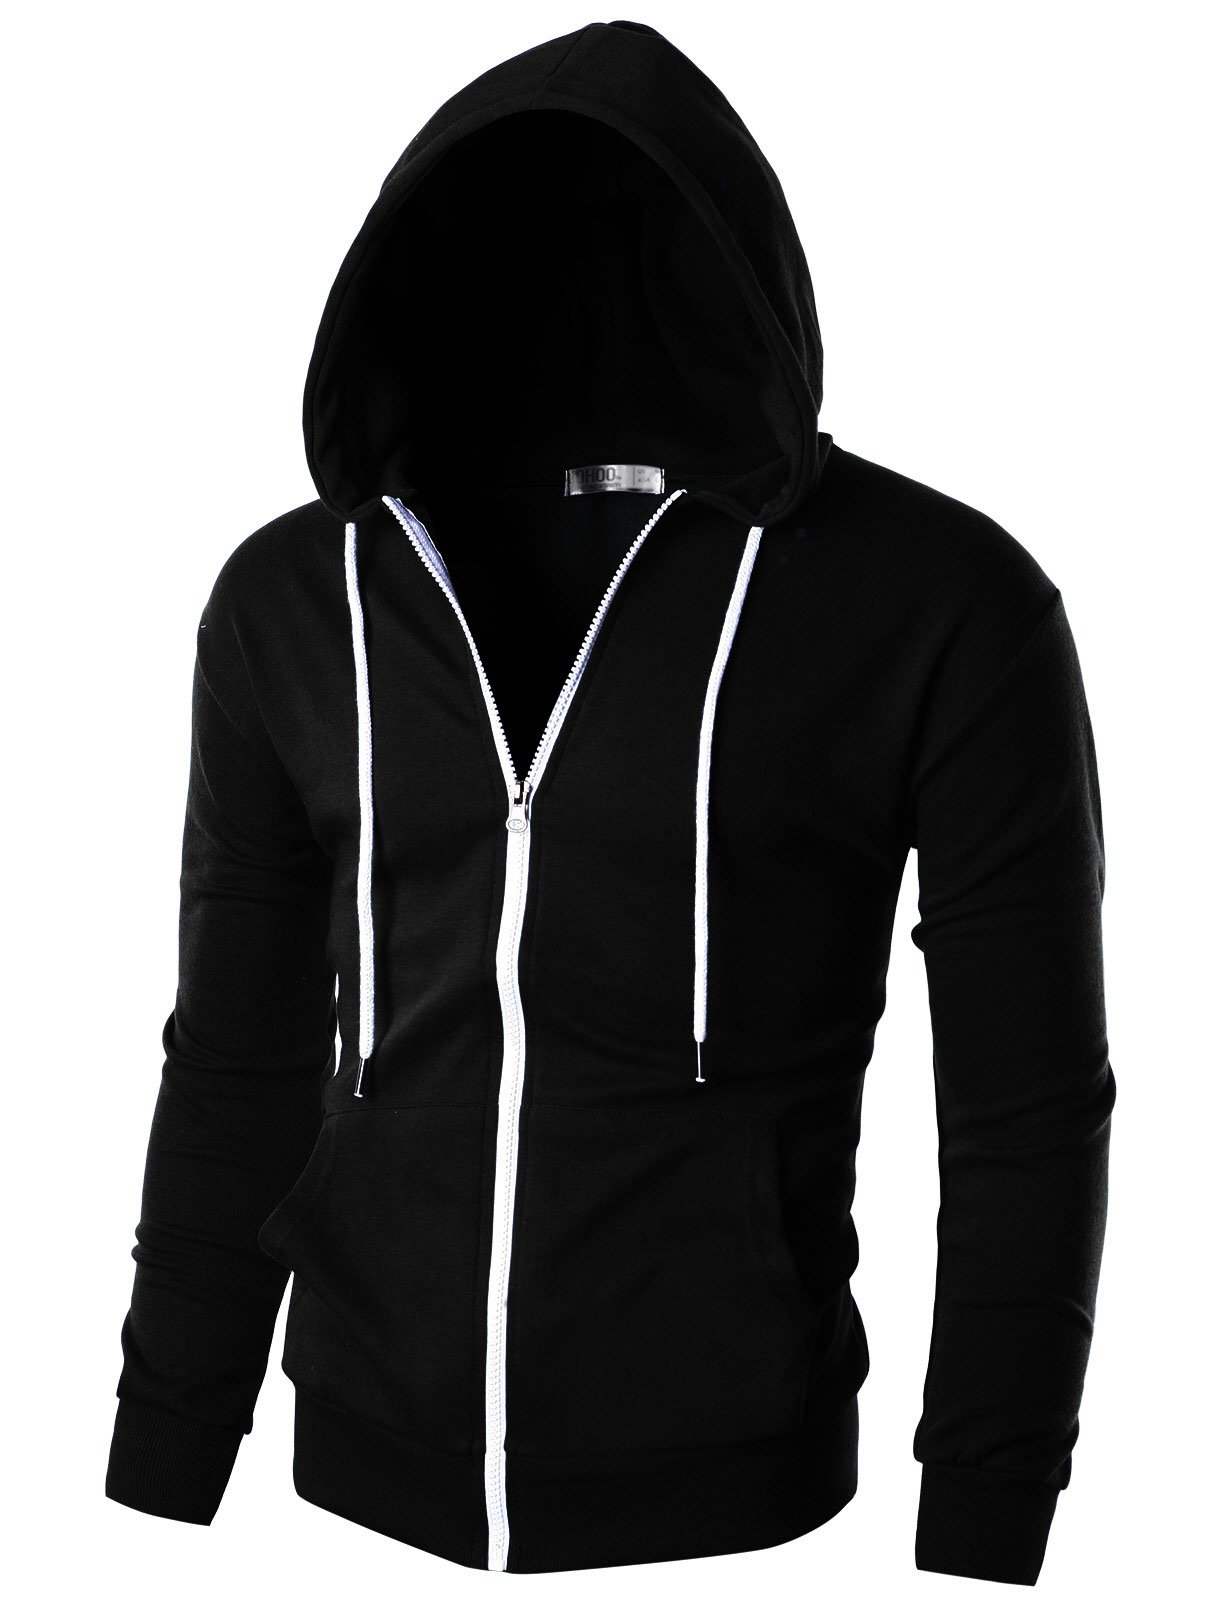 Ohoo Mens Slim Fit Long Sleeve Lightweight Zip-up Hoodie with Kanga Pocket/DCF002-BLACK-M